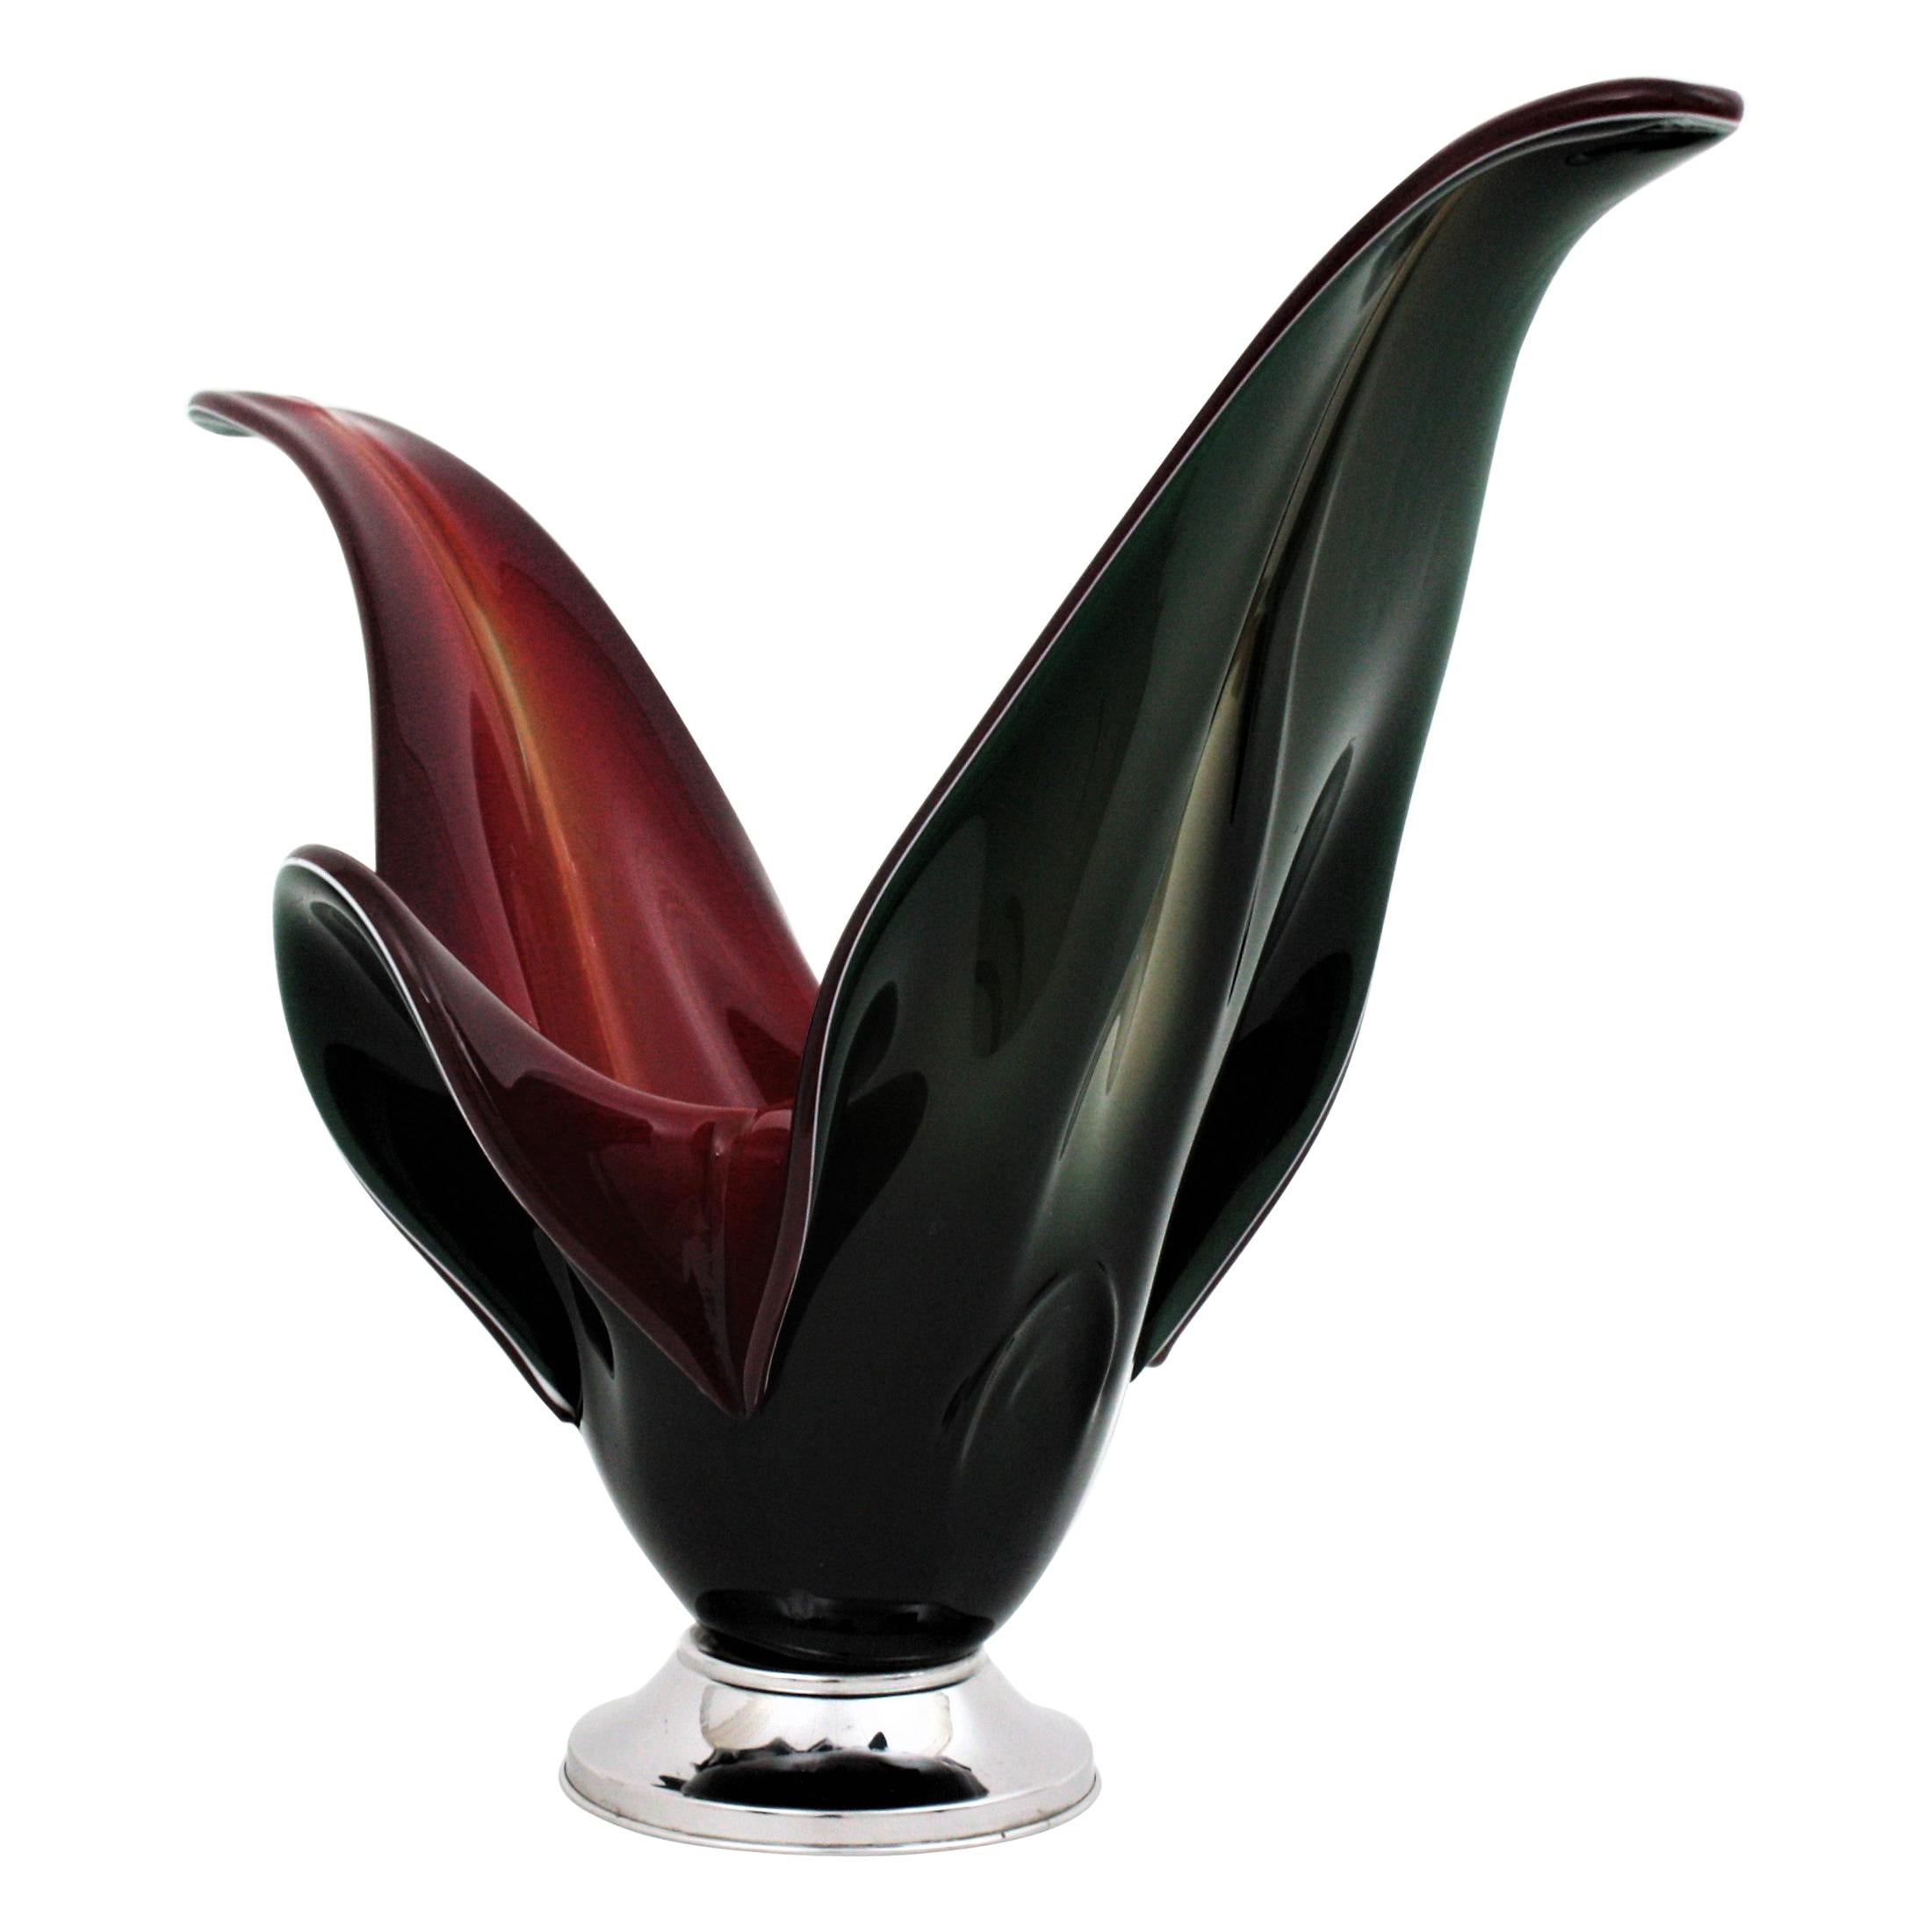 Italian Modernist Murano Black and Red Glass Centerpiece Vase with Chromed Base